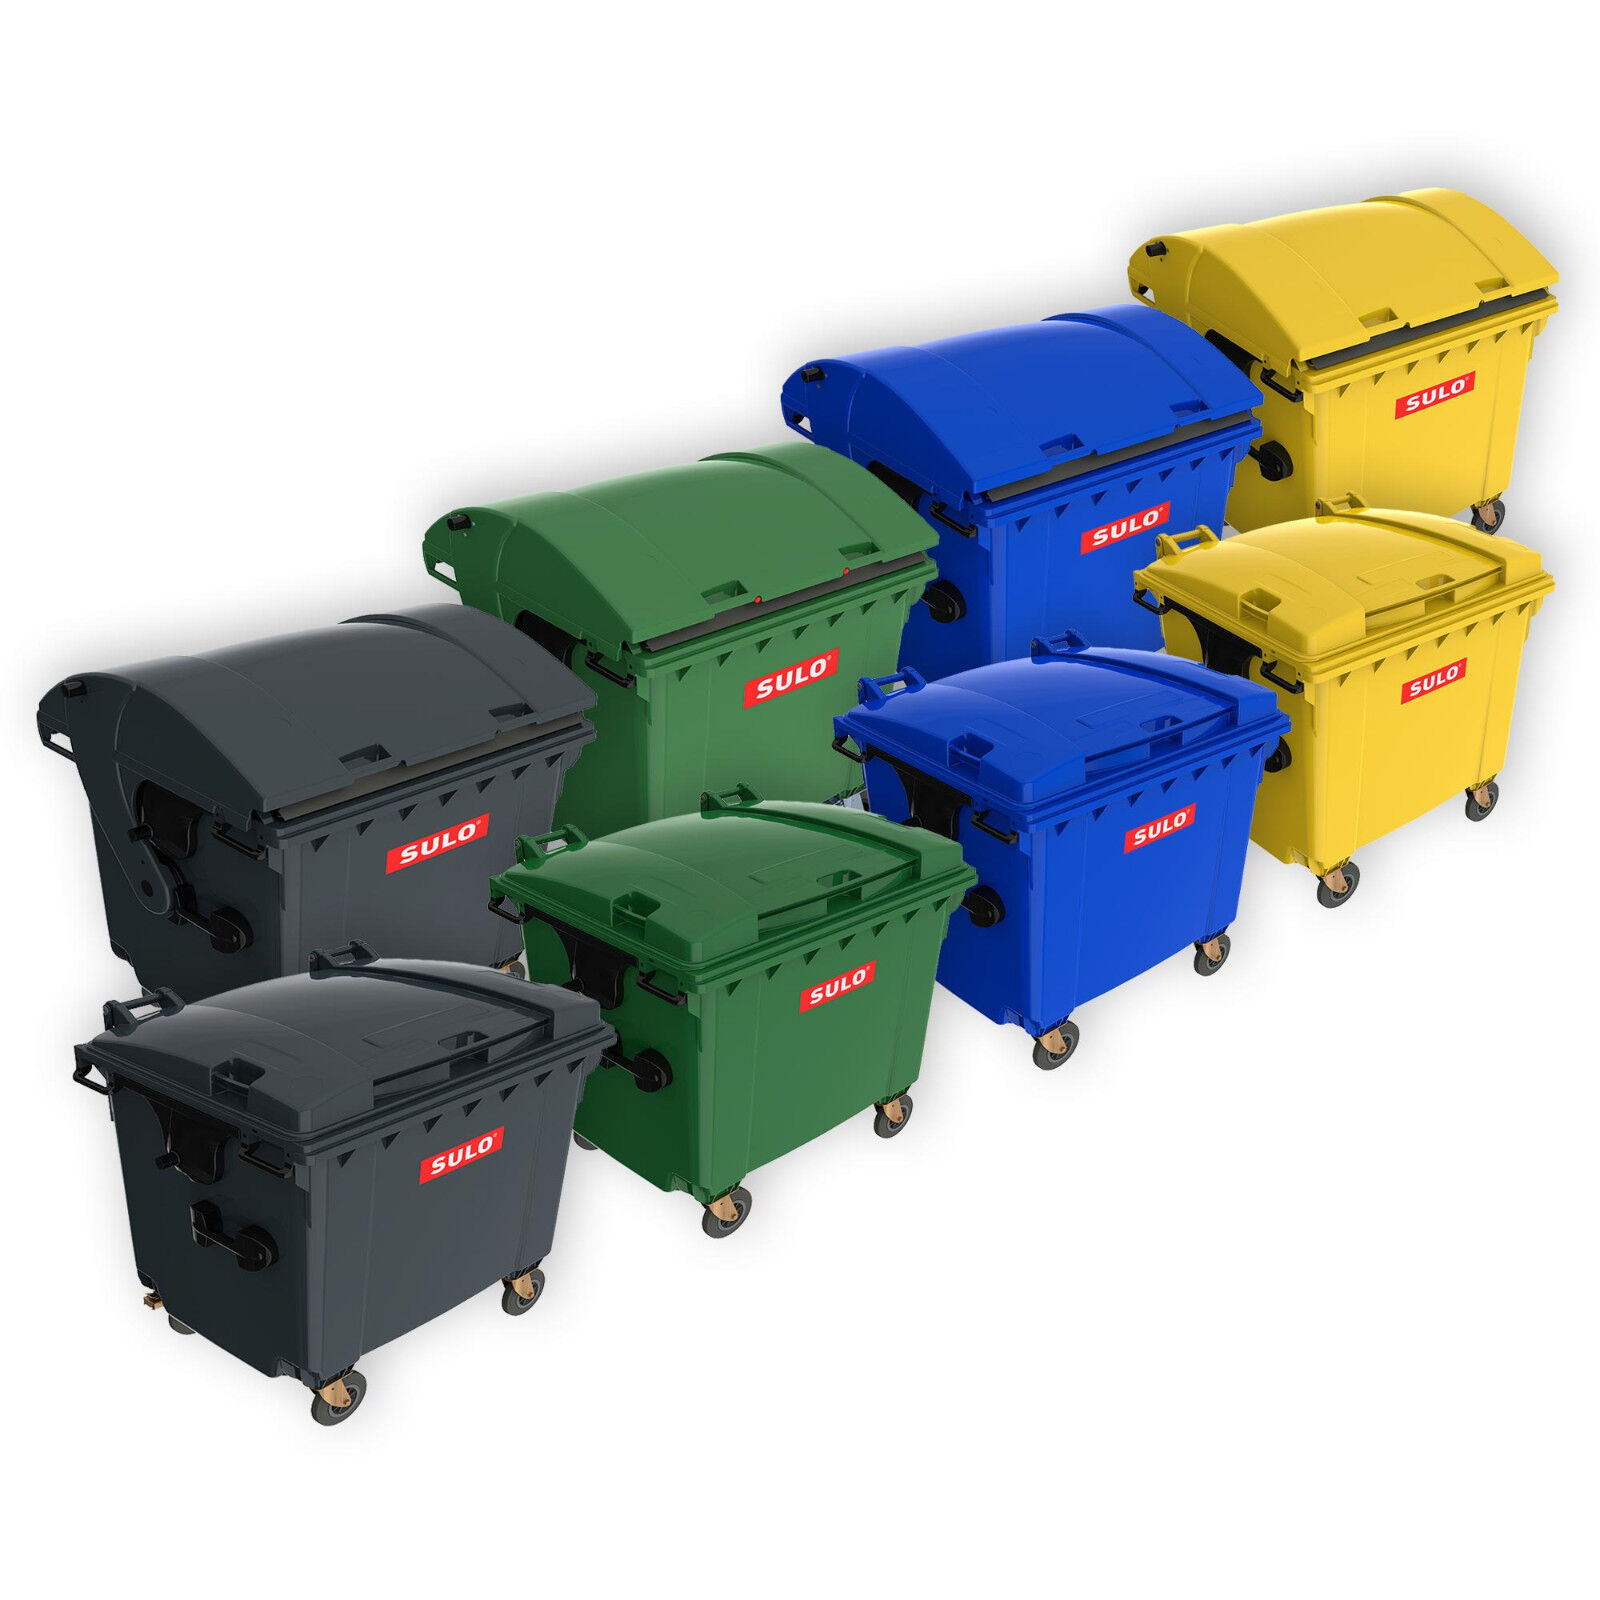 Sulo Bin Container 660 and 1100 Litre, Waste Large Container, Dustbin, Colourot New